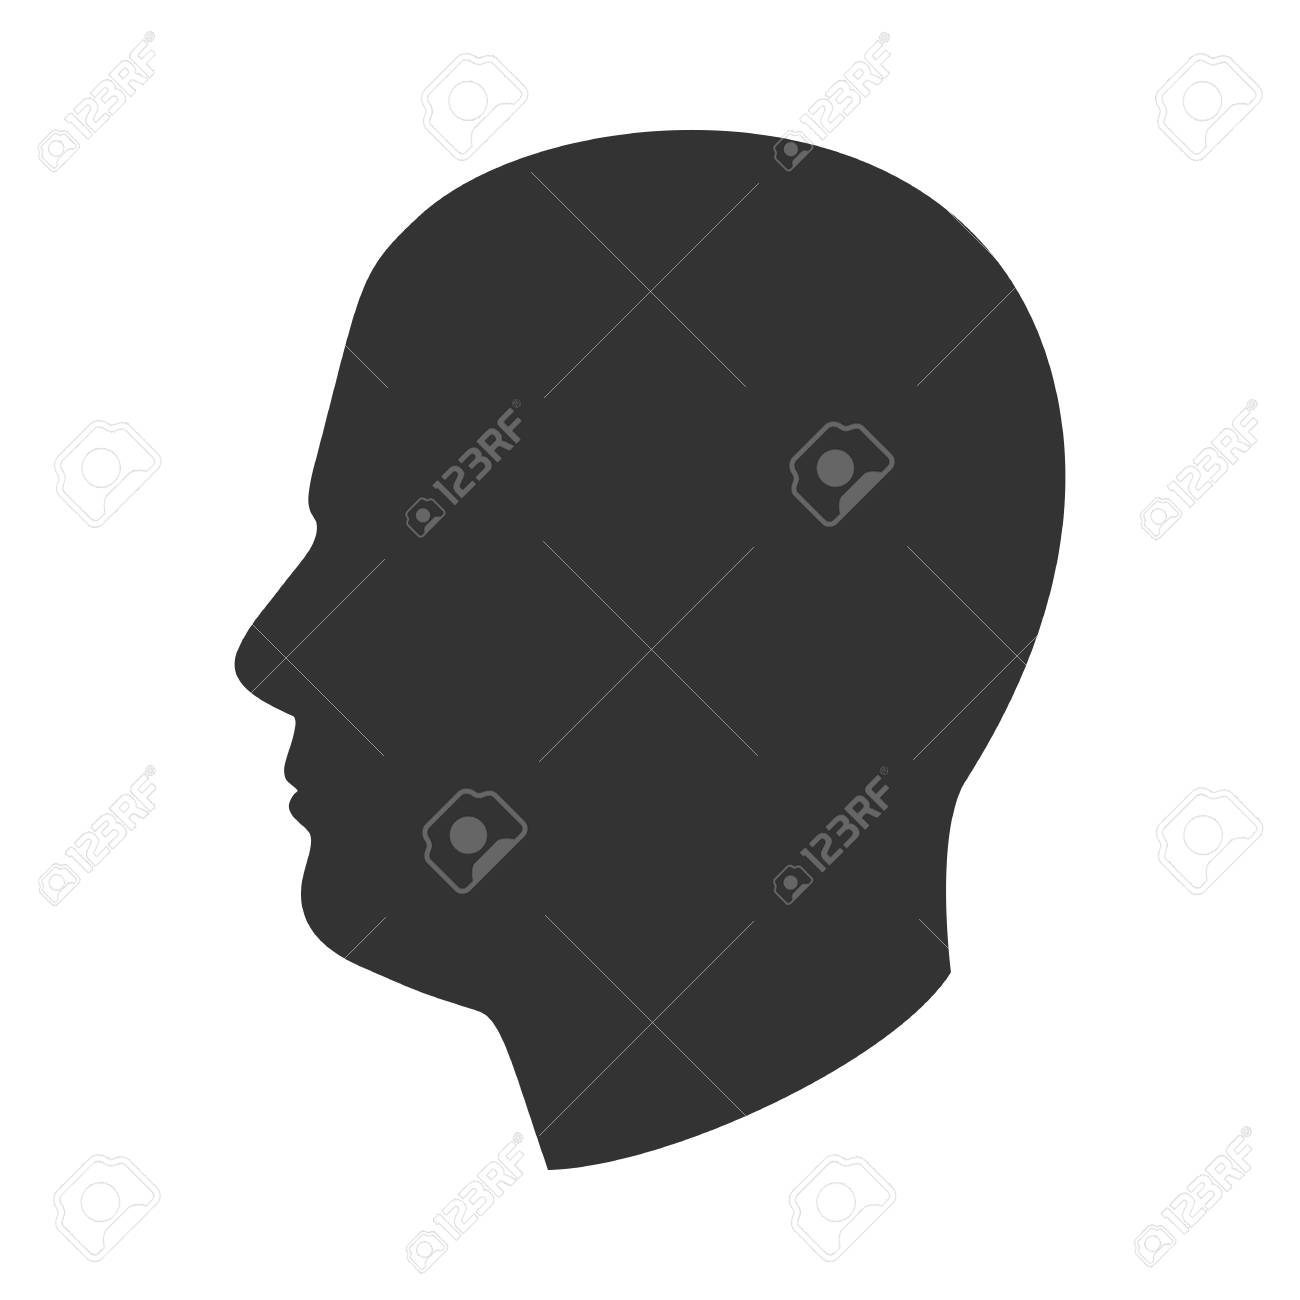 Silhouette of male head, man face in profile, side view - 102232852